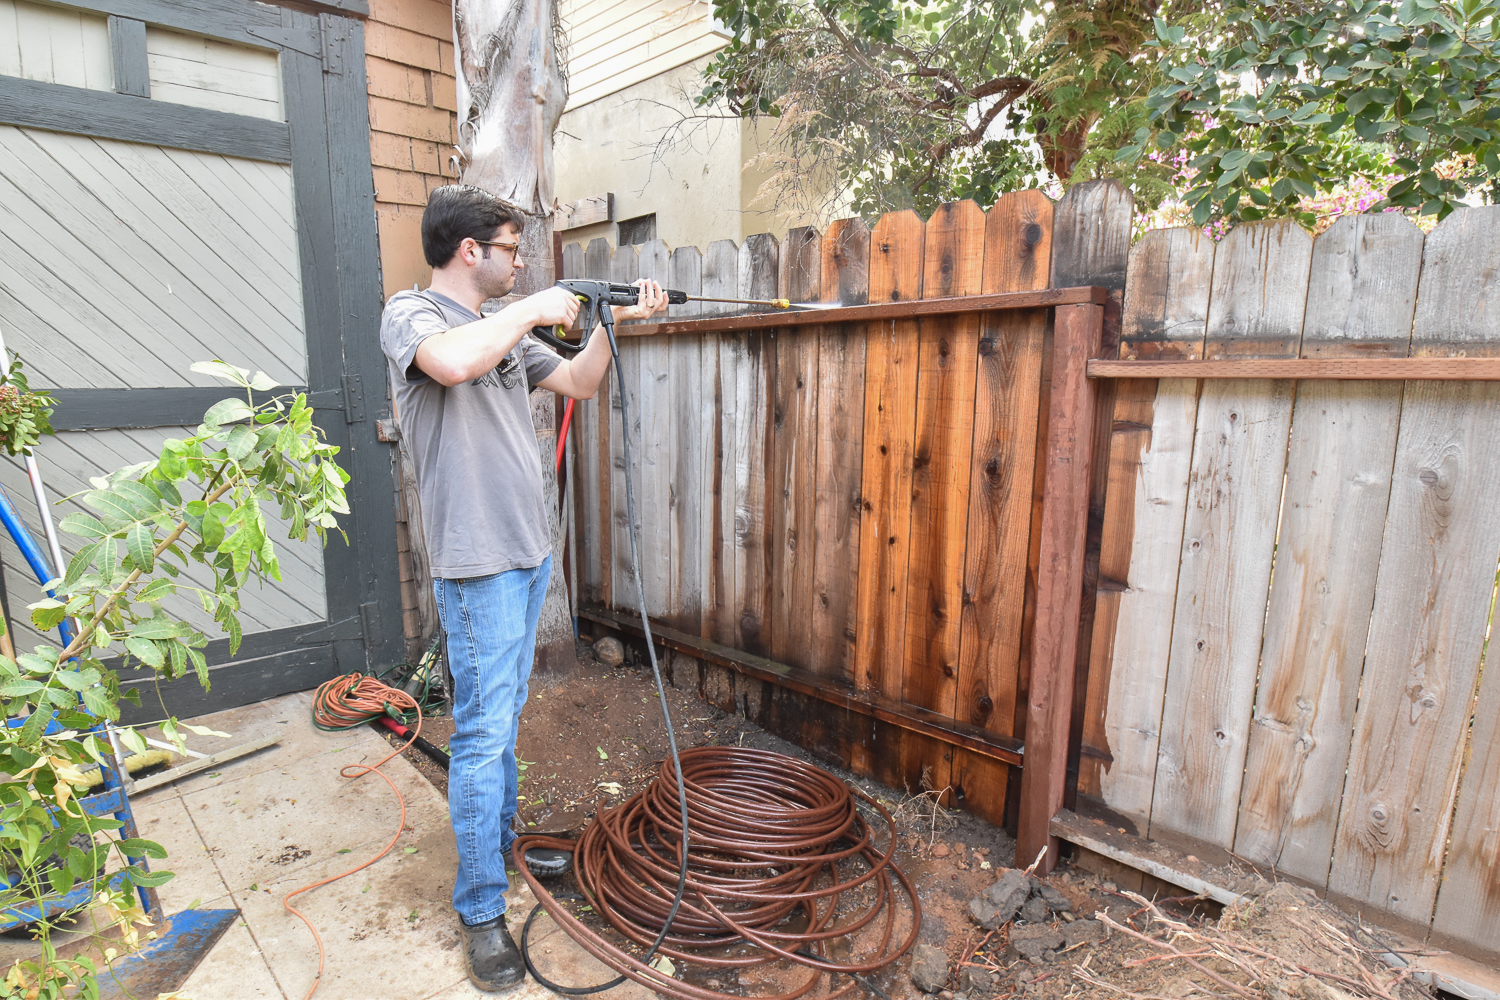 The Gold Hive How to Refresh a Fence - Powerwash-9997.jpg